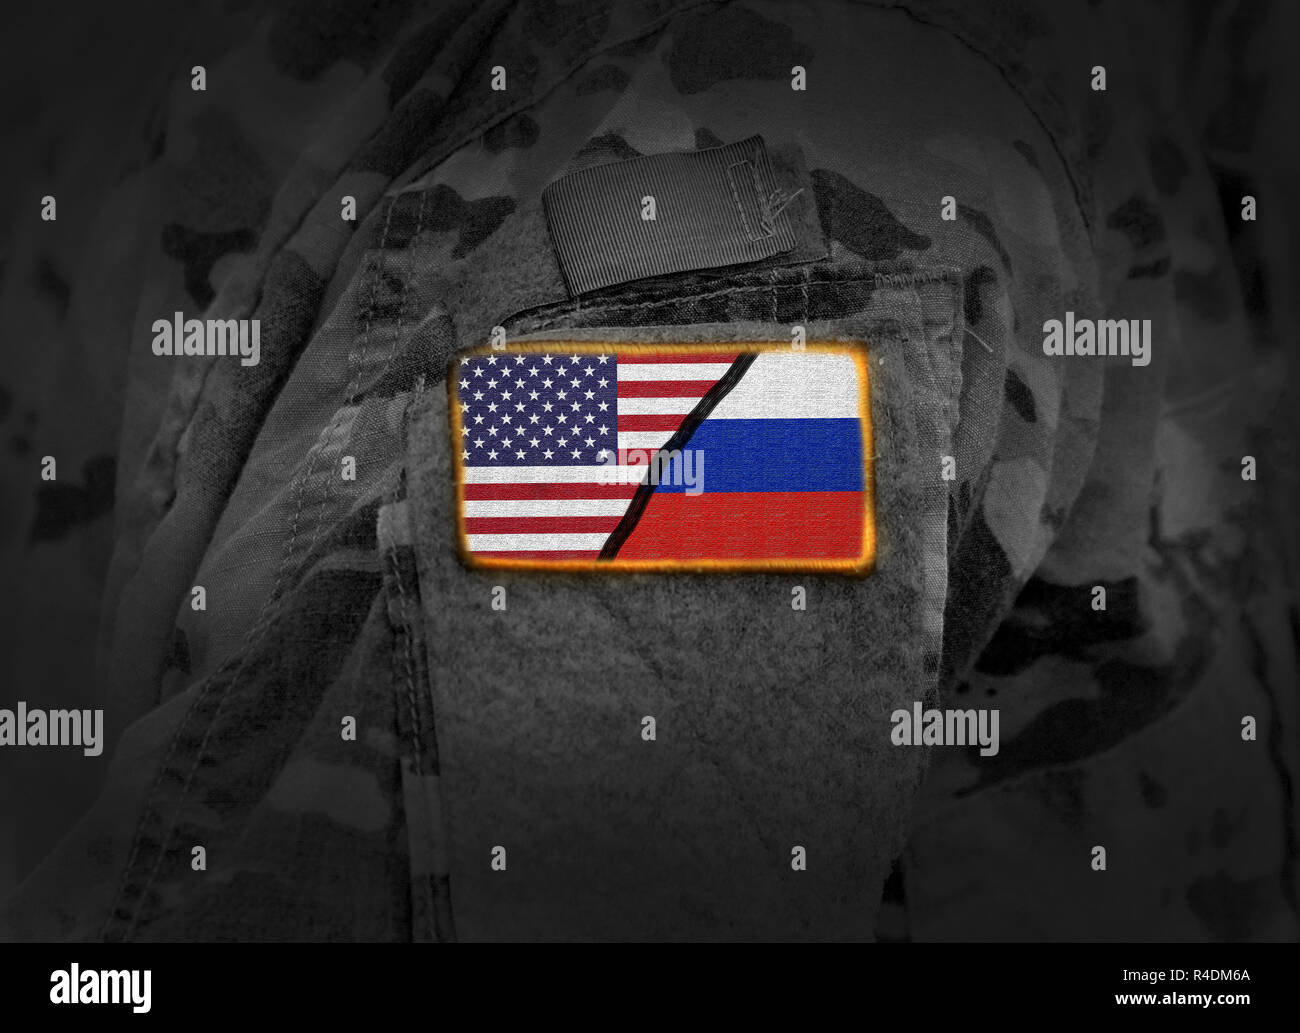 US vs Russia. Flag of United States and Russia at military uniform (collage) - Stock Image